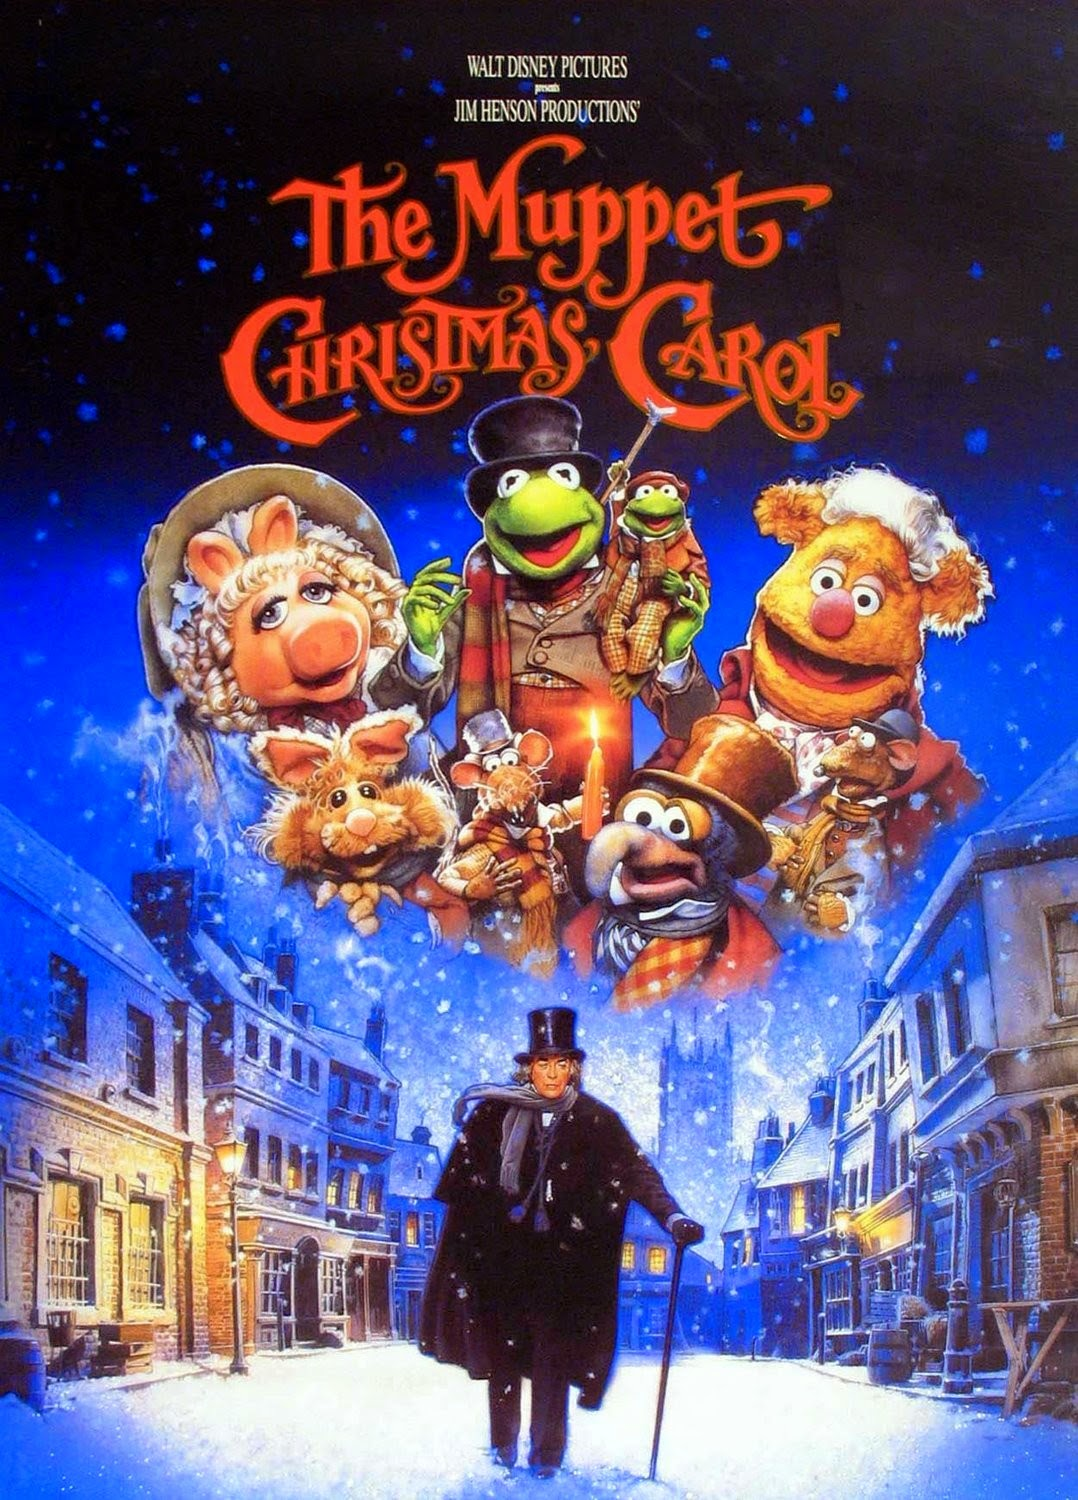 Ryan's Movie Reviews: Double Feature: The Muppet Christmas Carol and A Muppet Family Christmas ...